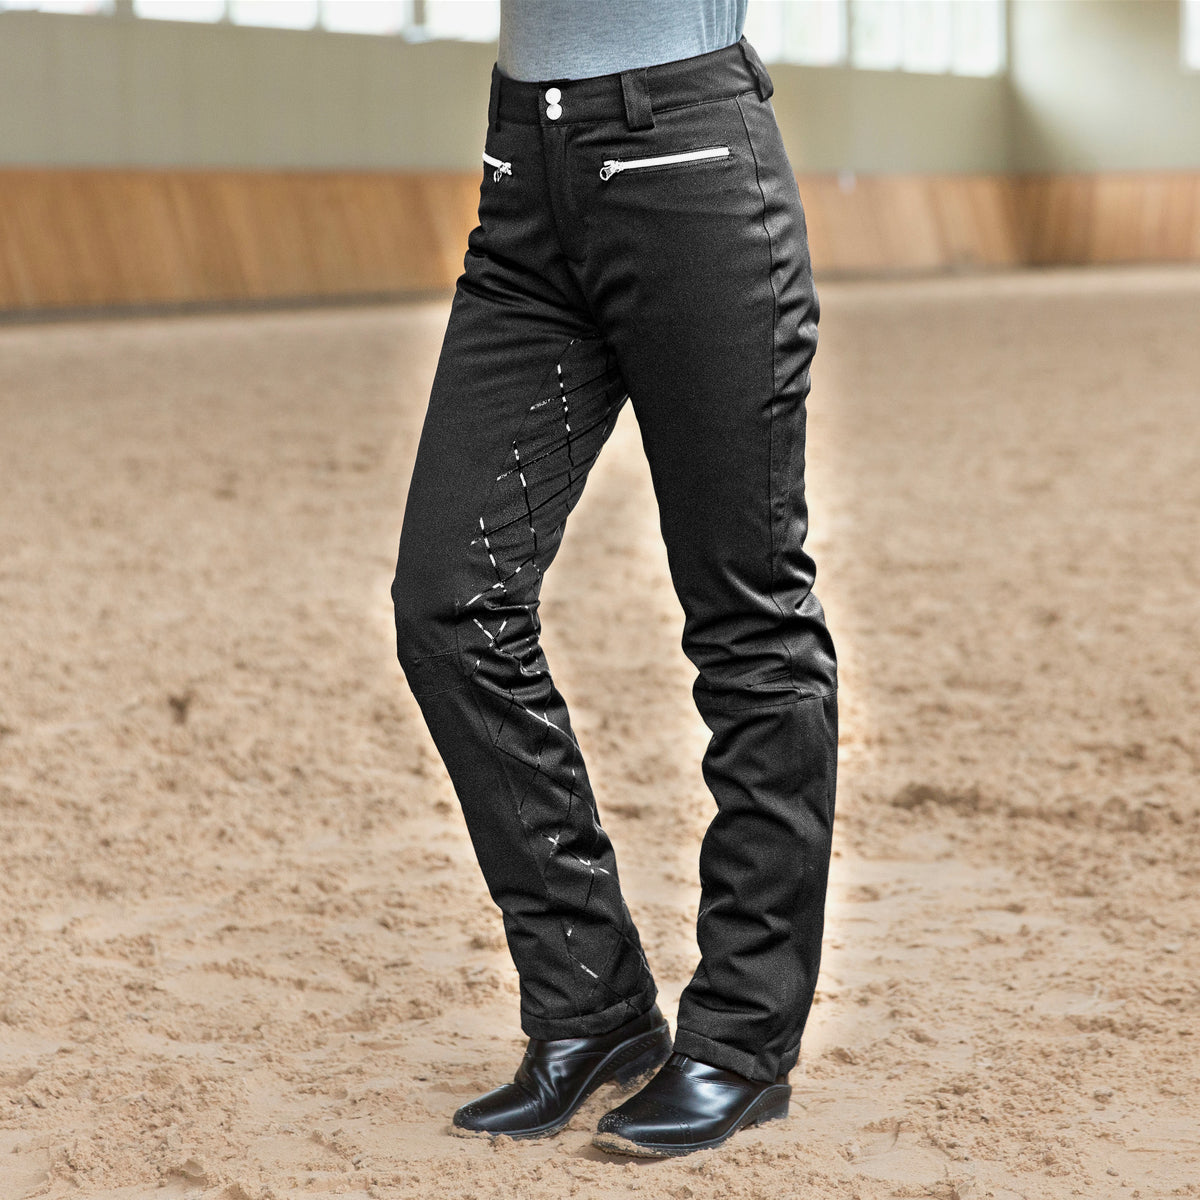 Horze Adeline Winter Rider Breeches